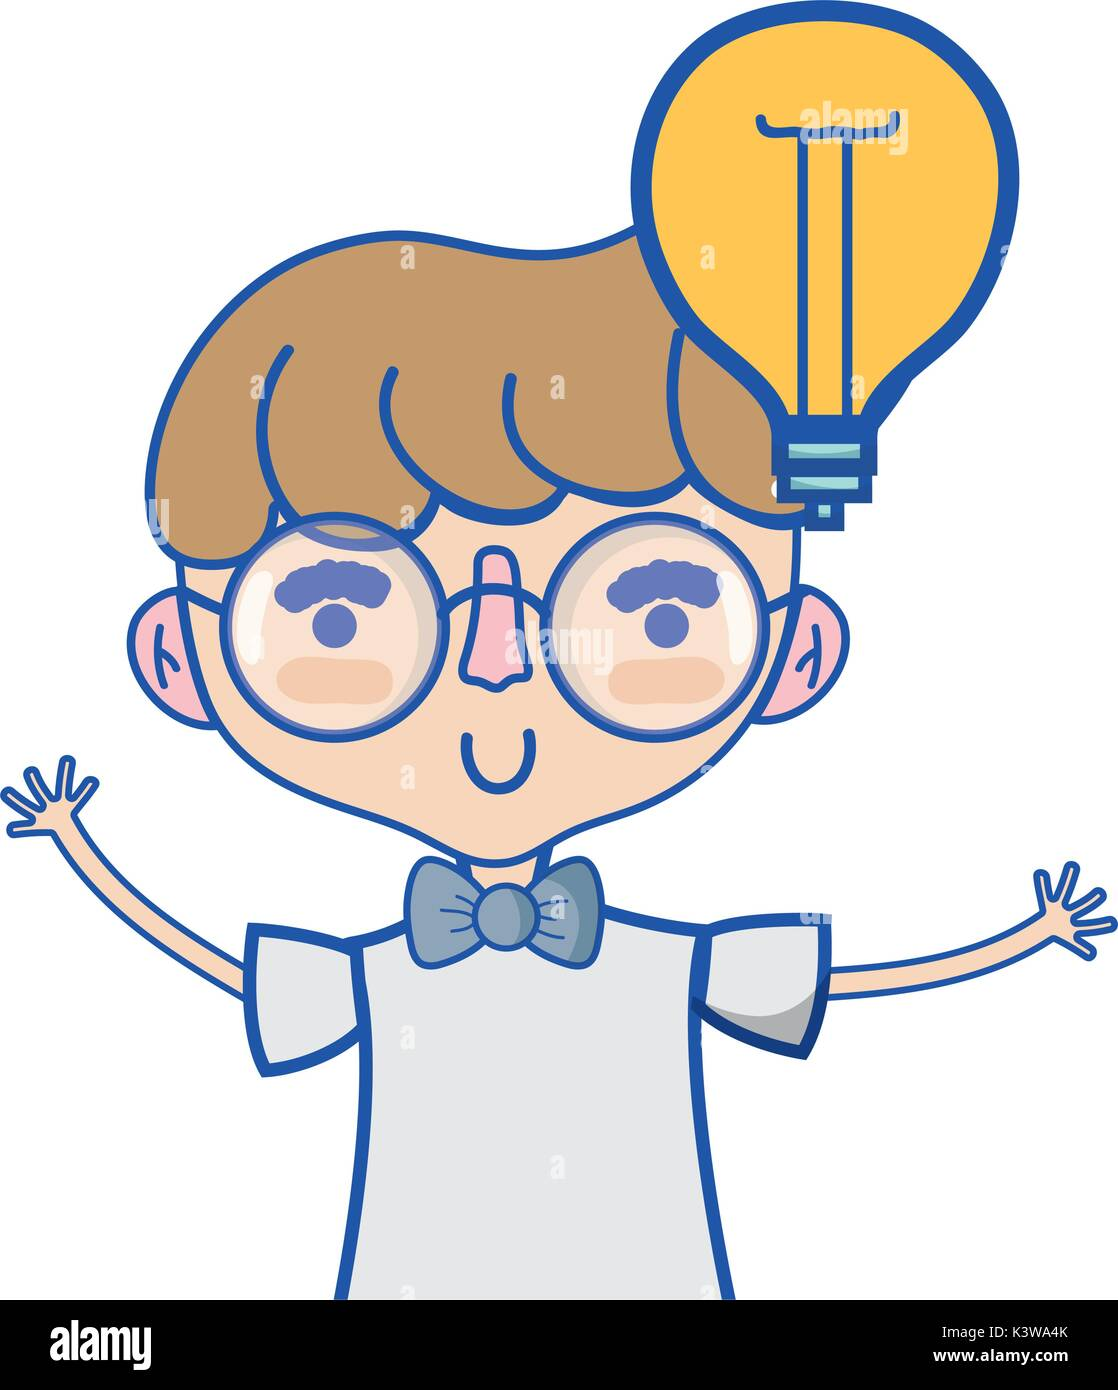 Boy With Bulb Idea And Hairstyle Design Stock Vector Art